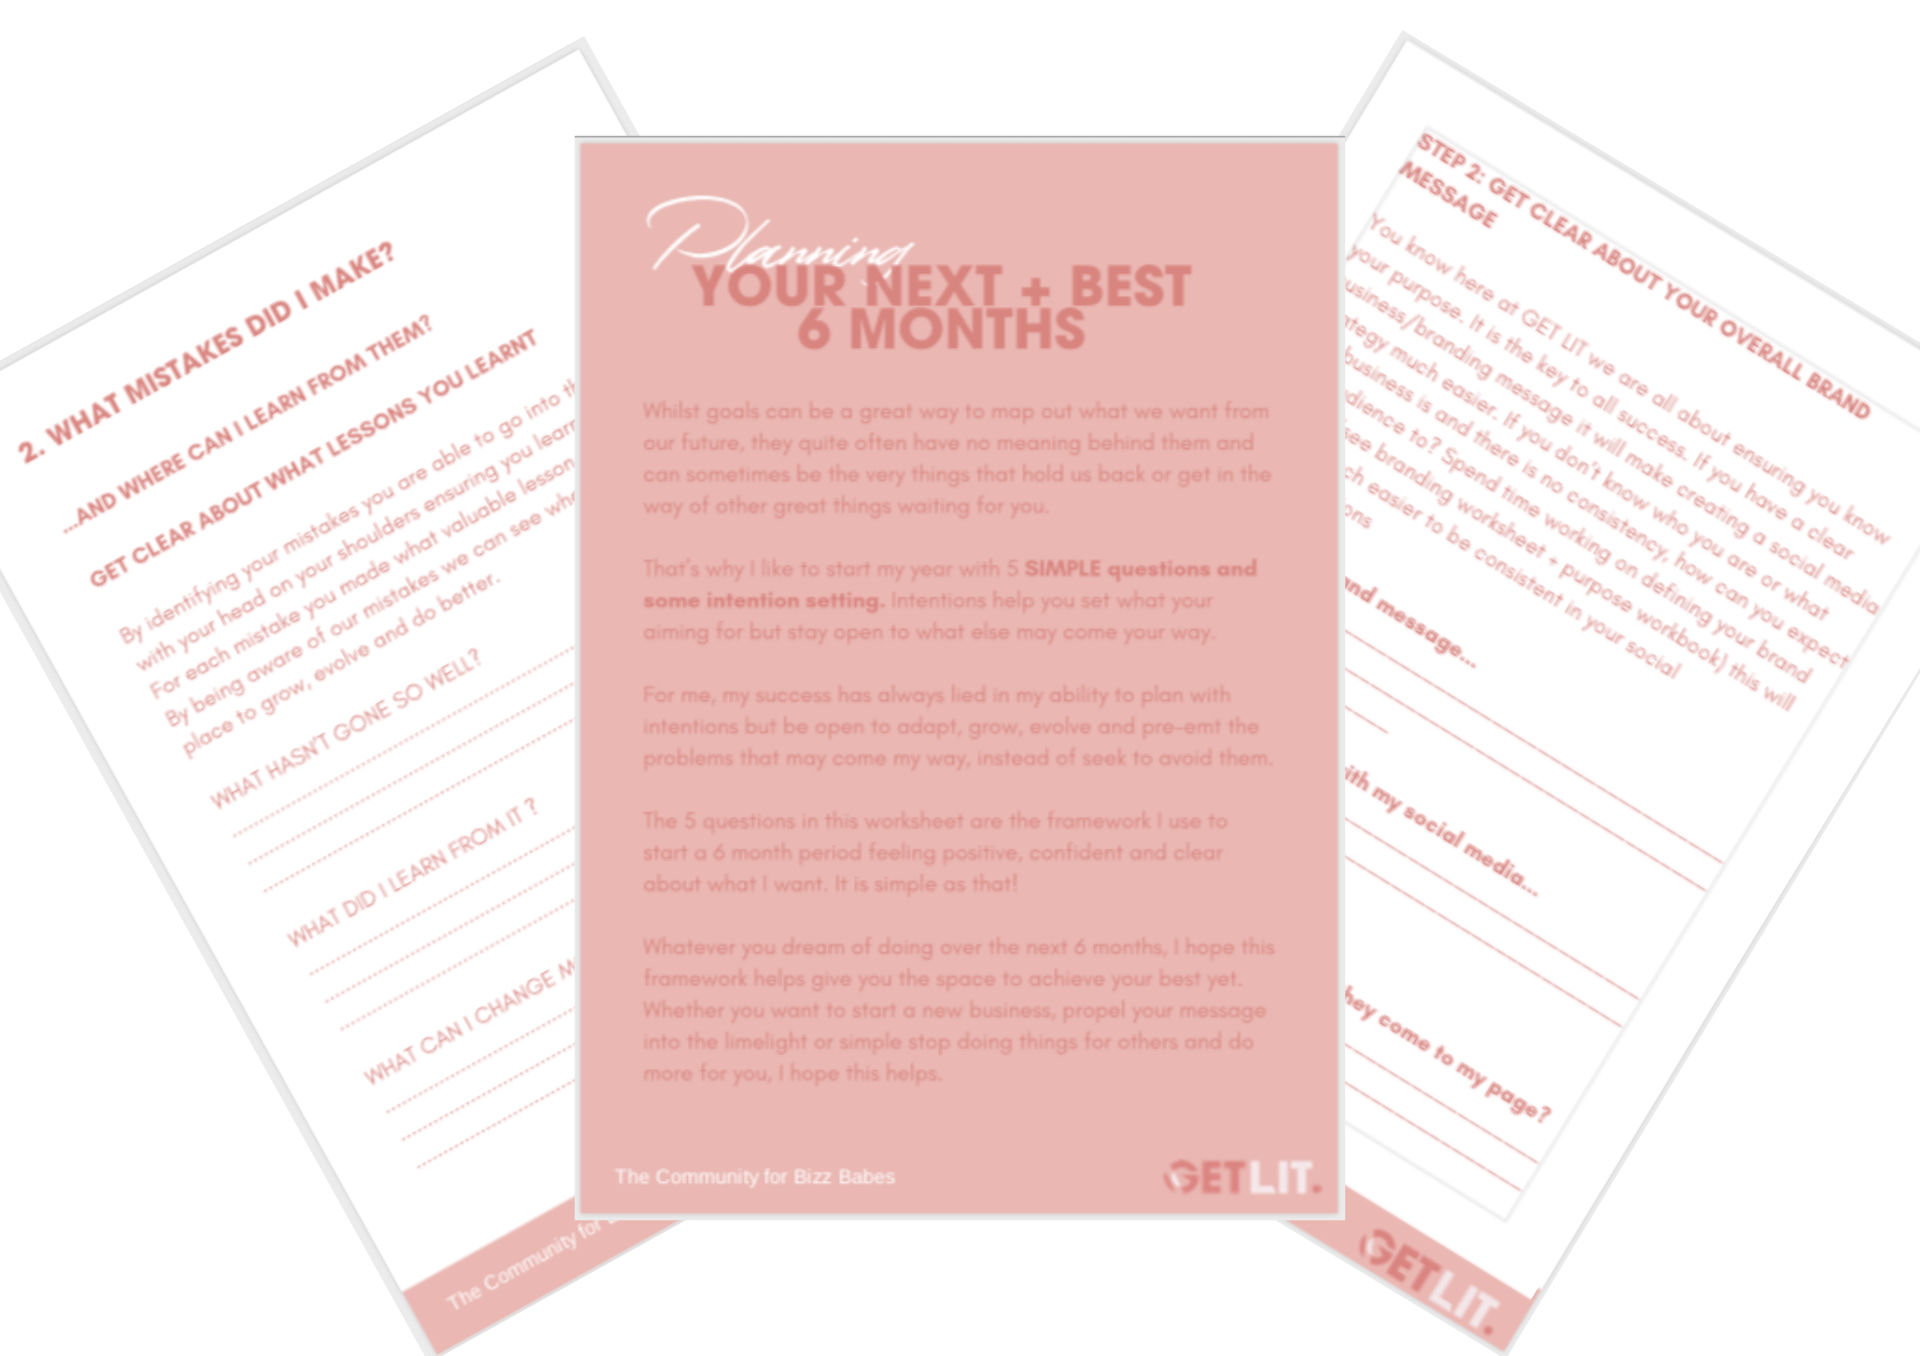 Planning your Next + Best 6 Months - Take a little check on where you are and make way for what to come with this Planning your Next + Best 6 Months Worksheet.